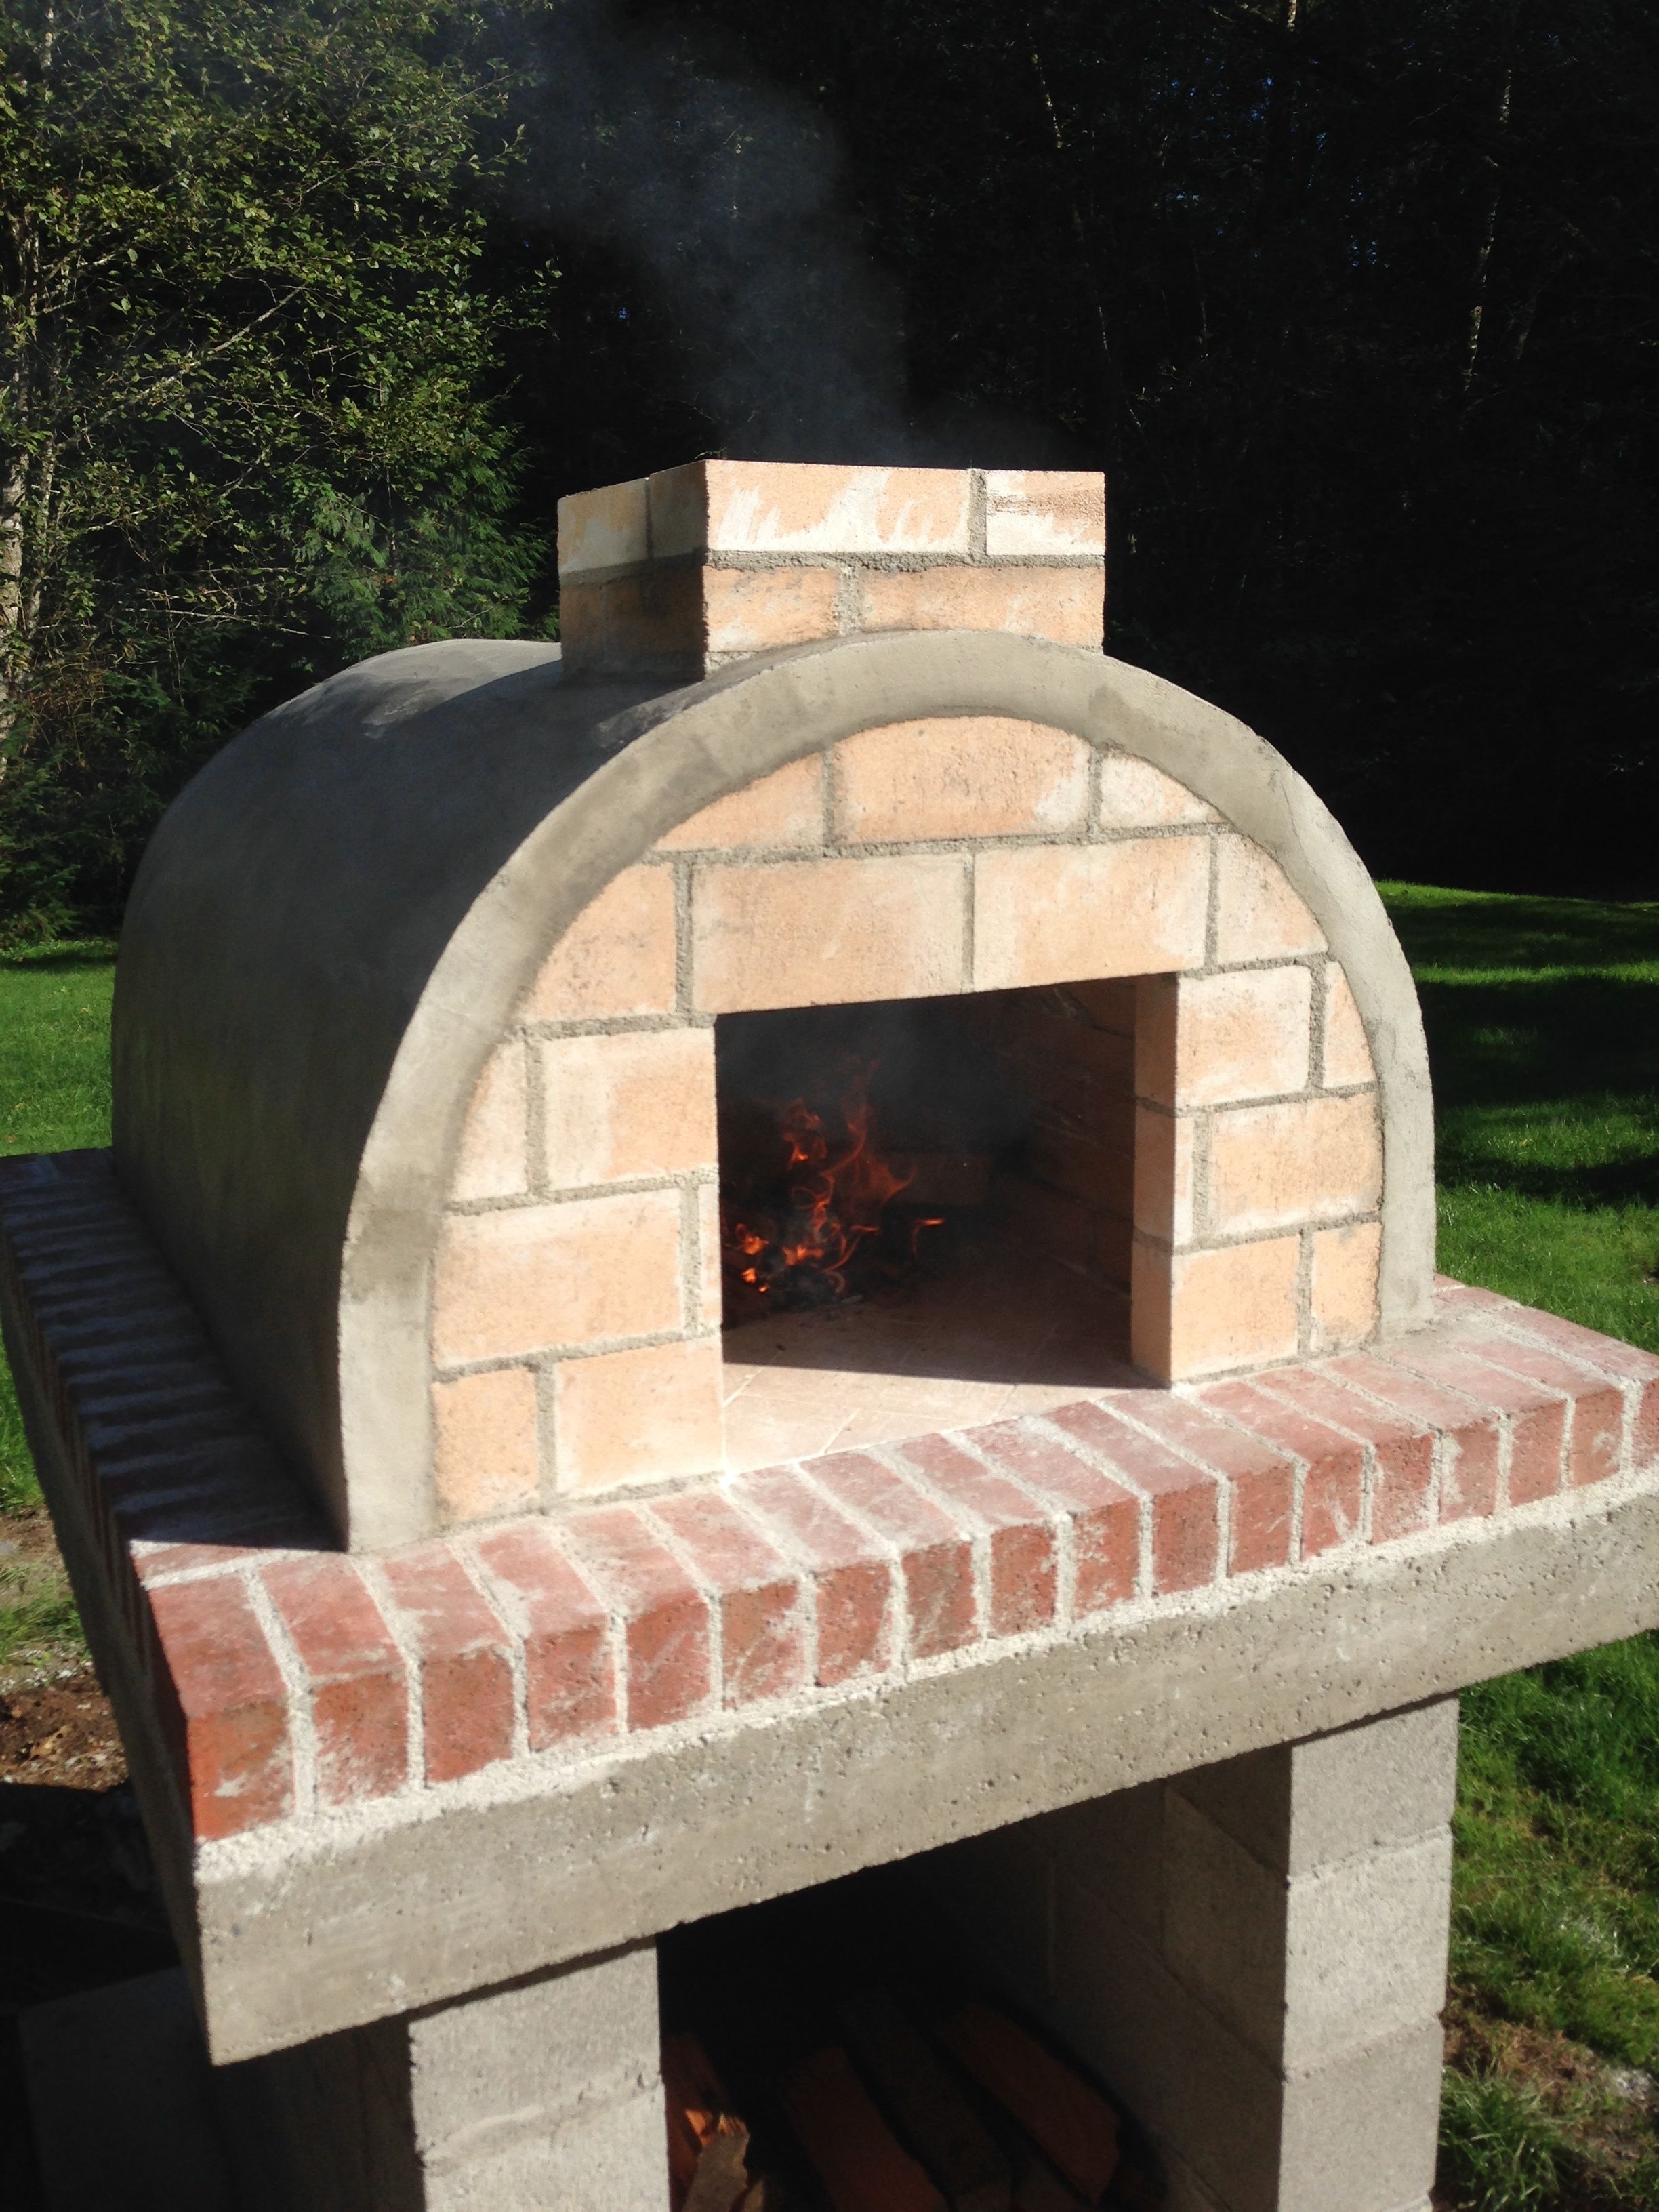 Anderson family woodfired outdoor diy pizza oven by